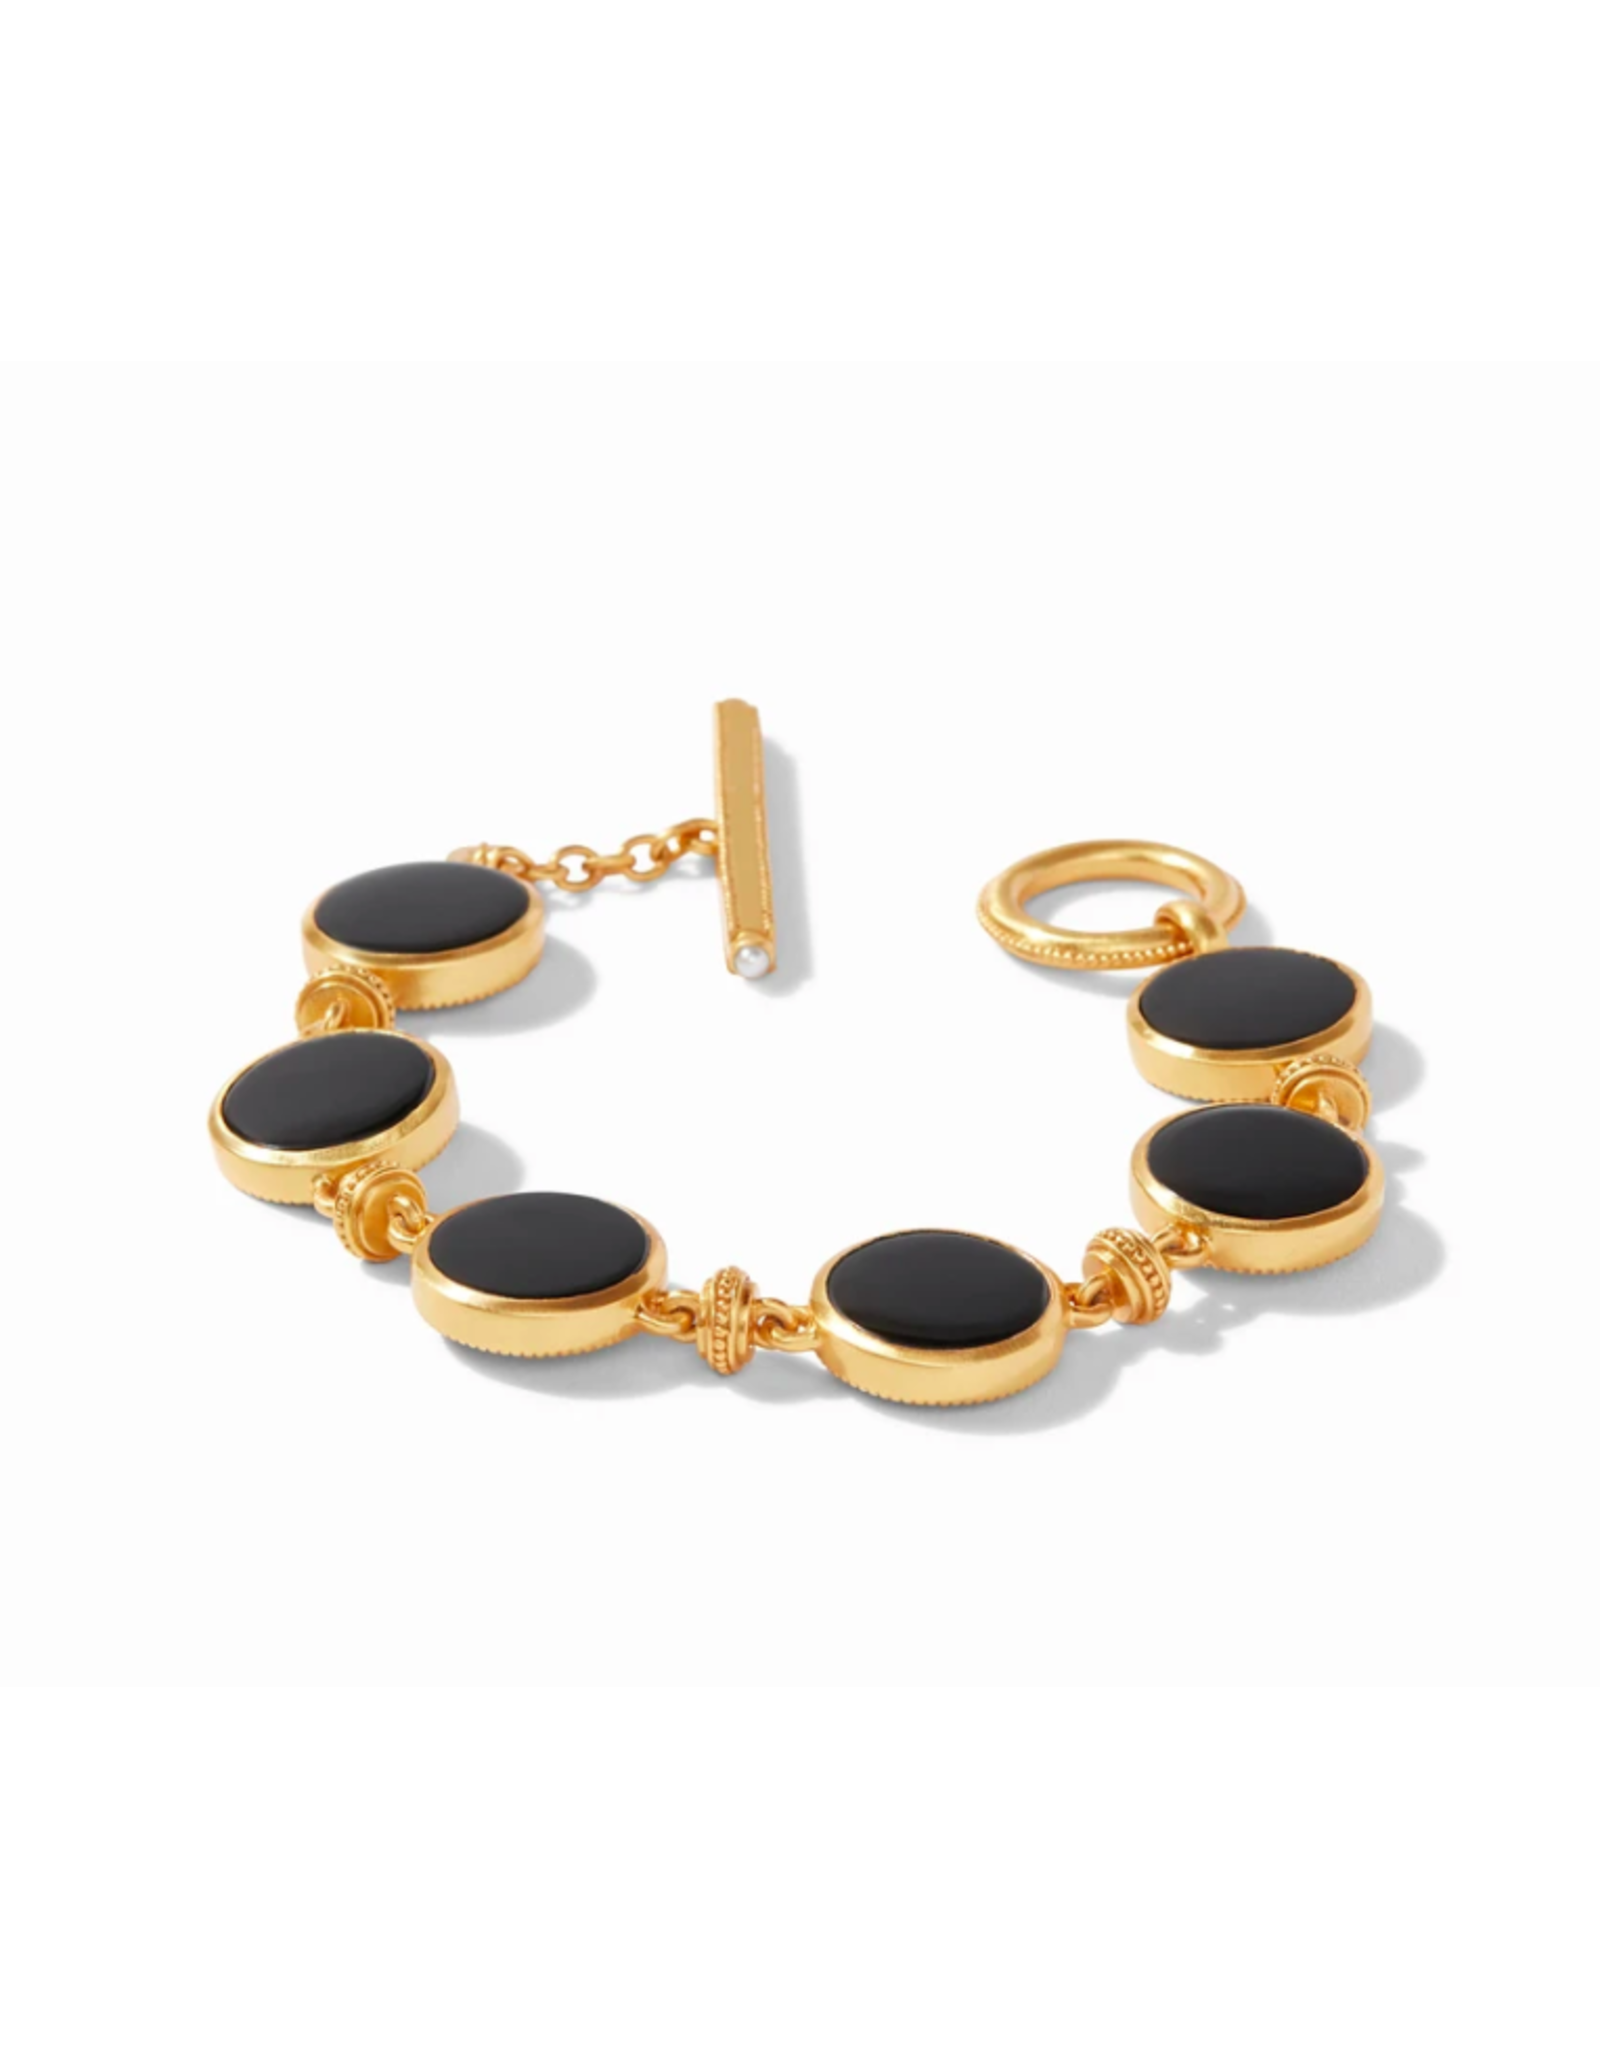 Julie Vos Coin Double Sided Bracelet in Black Onyx by Julie Vos